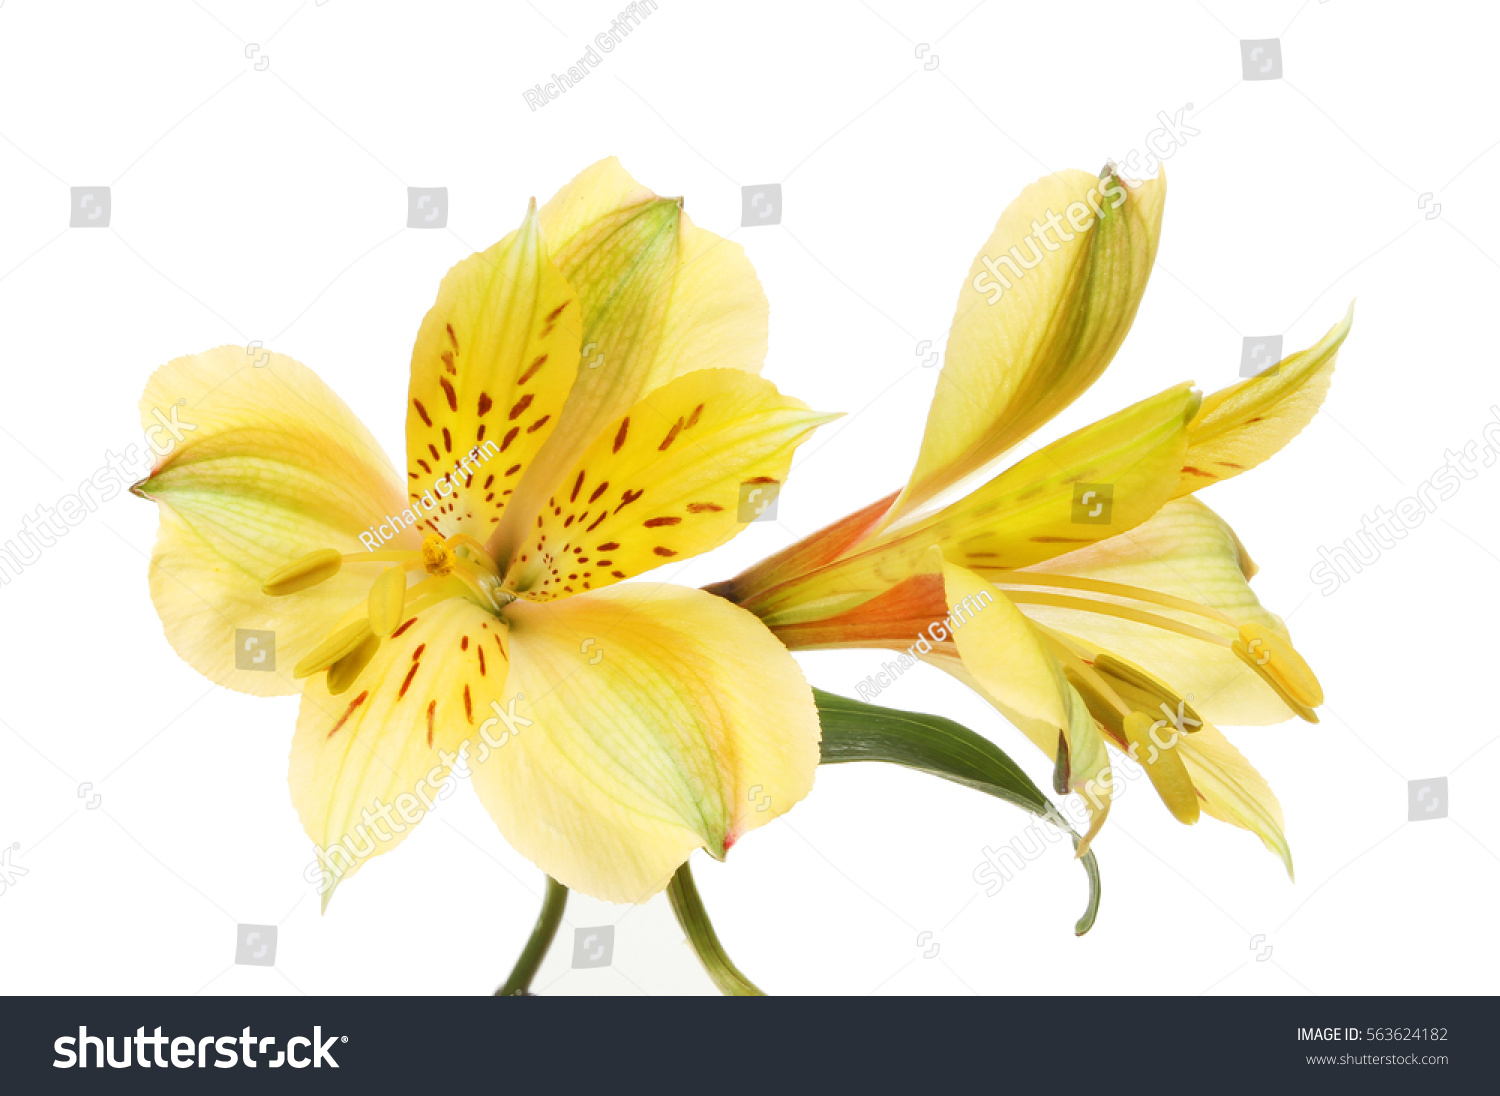 Two yellow alstroemeria peruvian lily flowers stock photo royalty two yellow alstroemeria peruvian lily flowers isolated against white izmirmasajfo Gallery